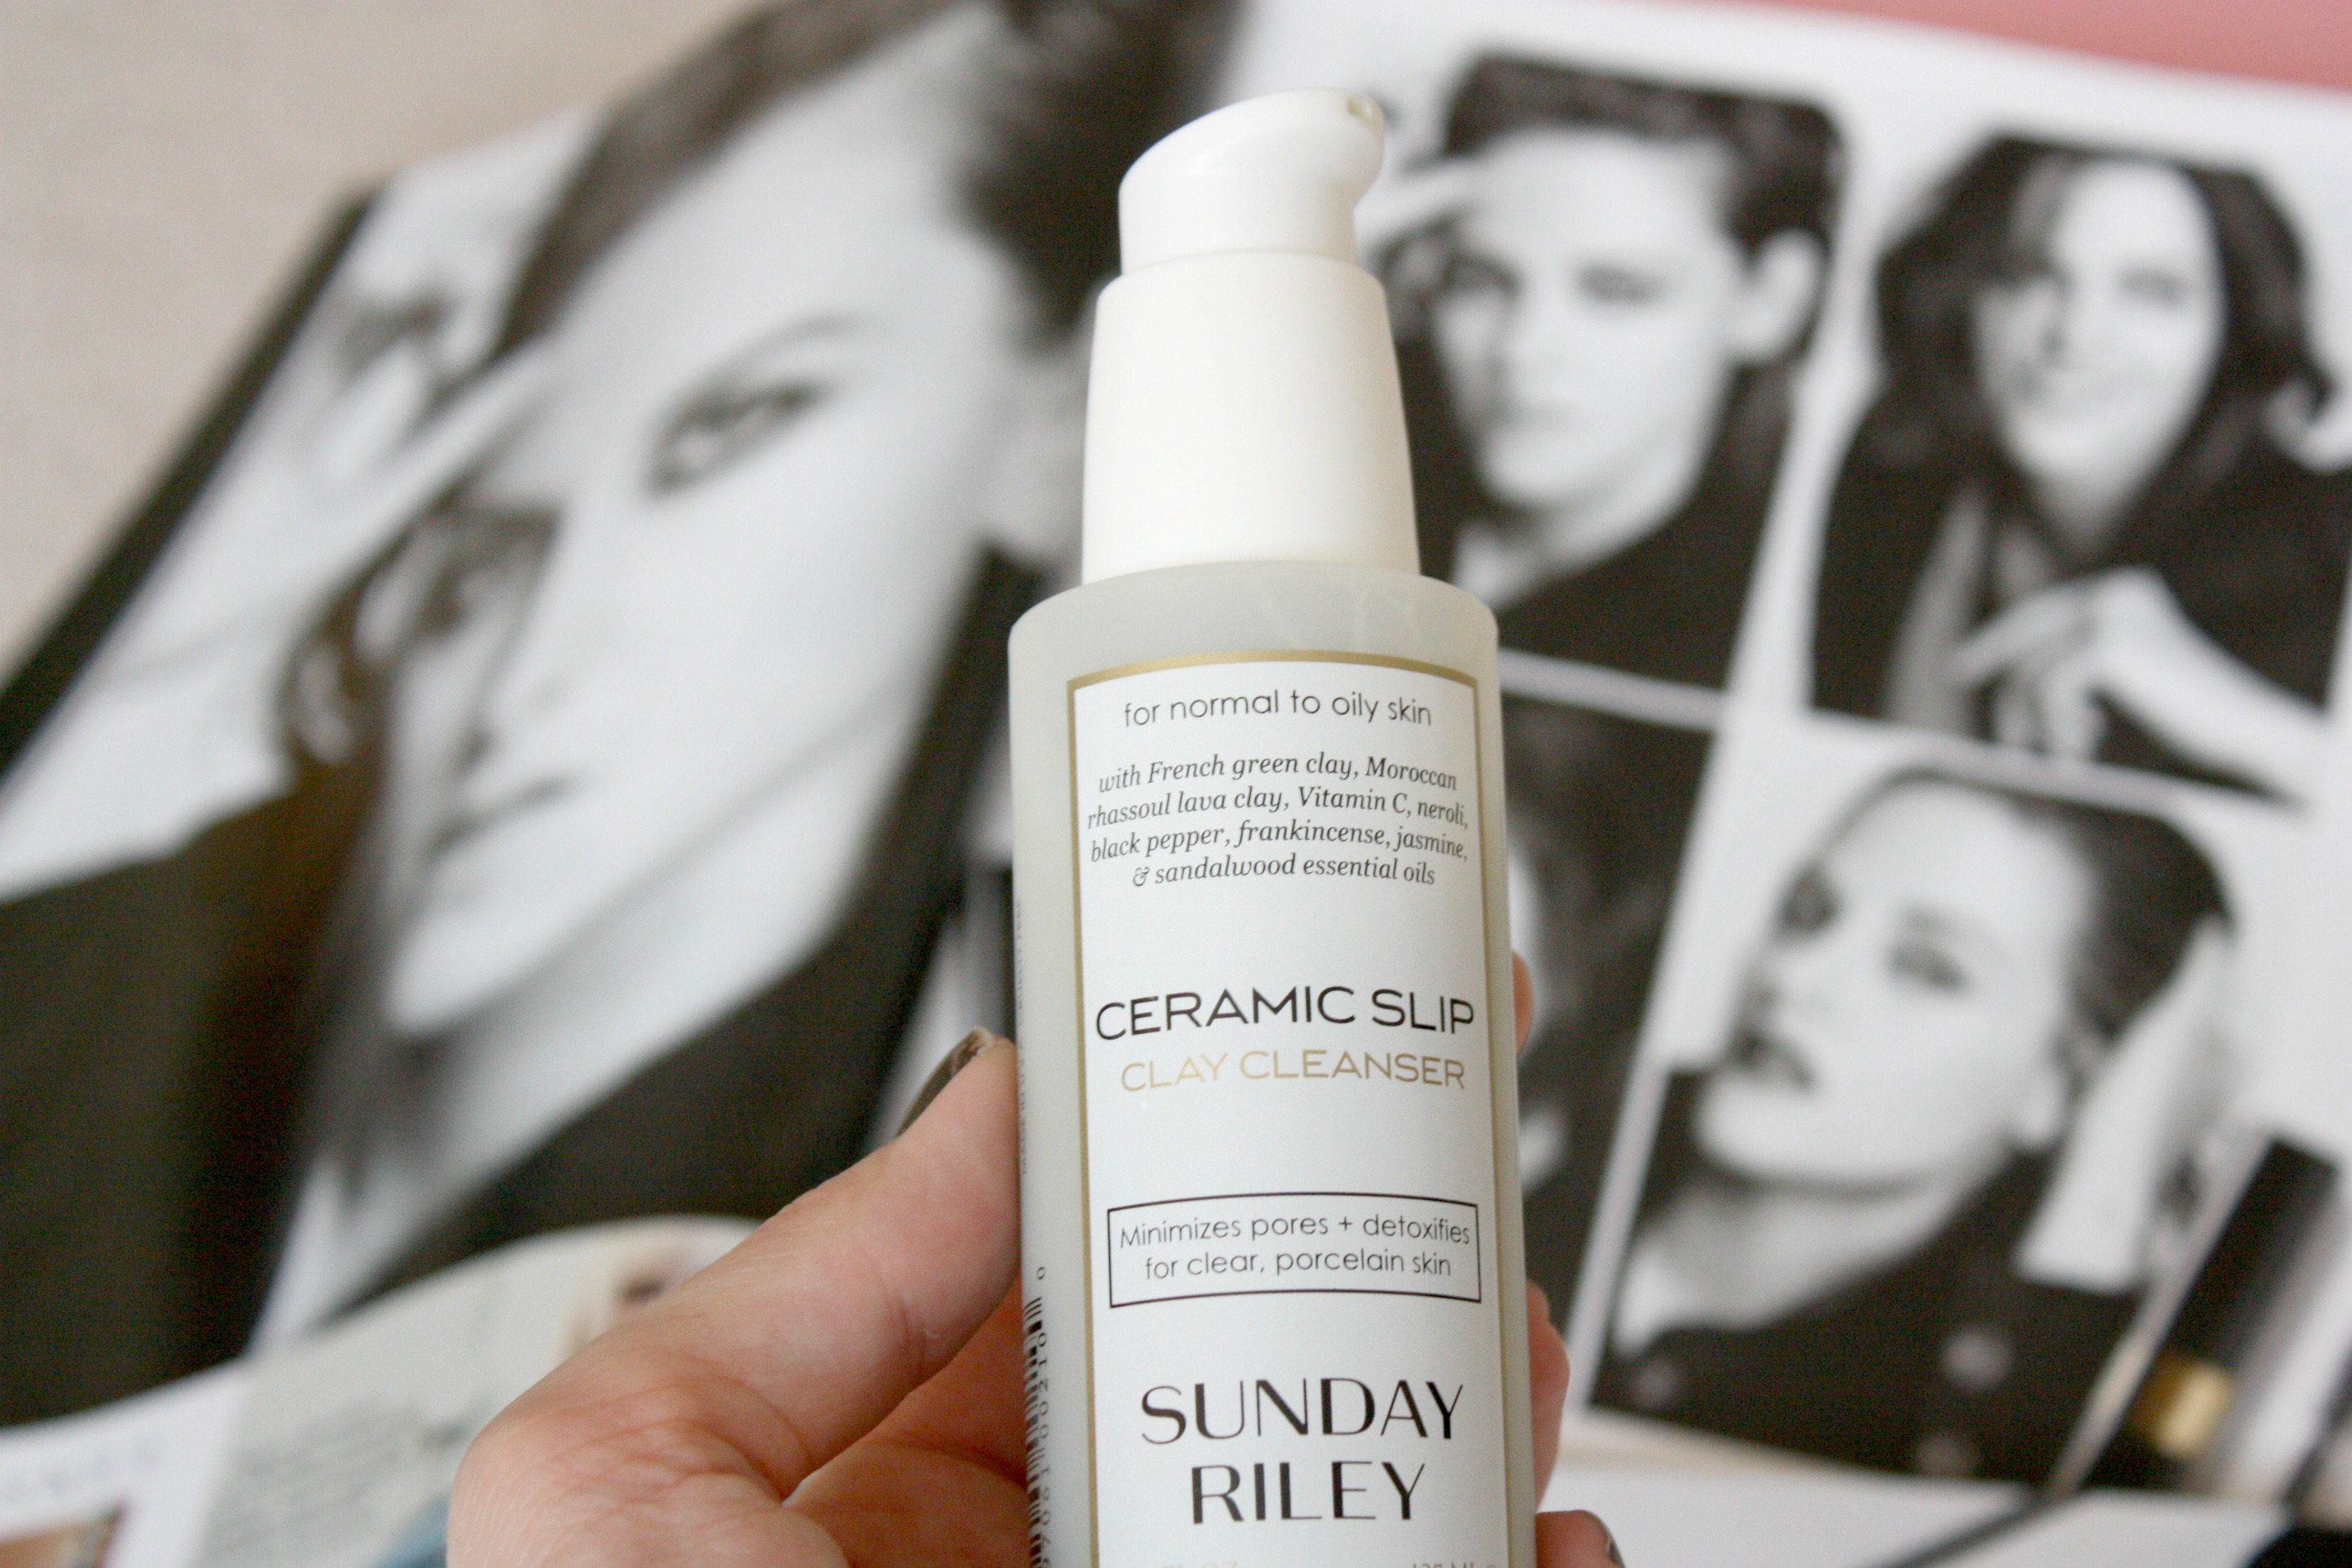 Ceramic Slip Clay Cleanser from Sunday Riley – review